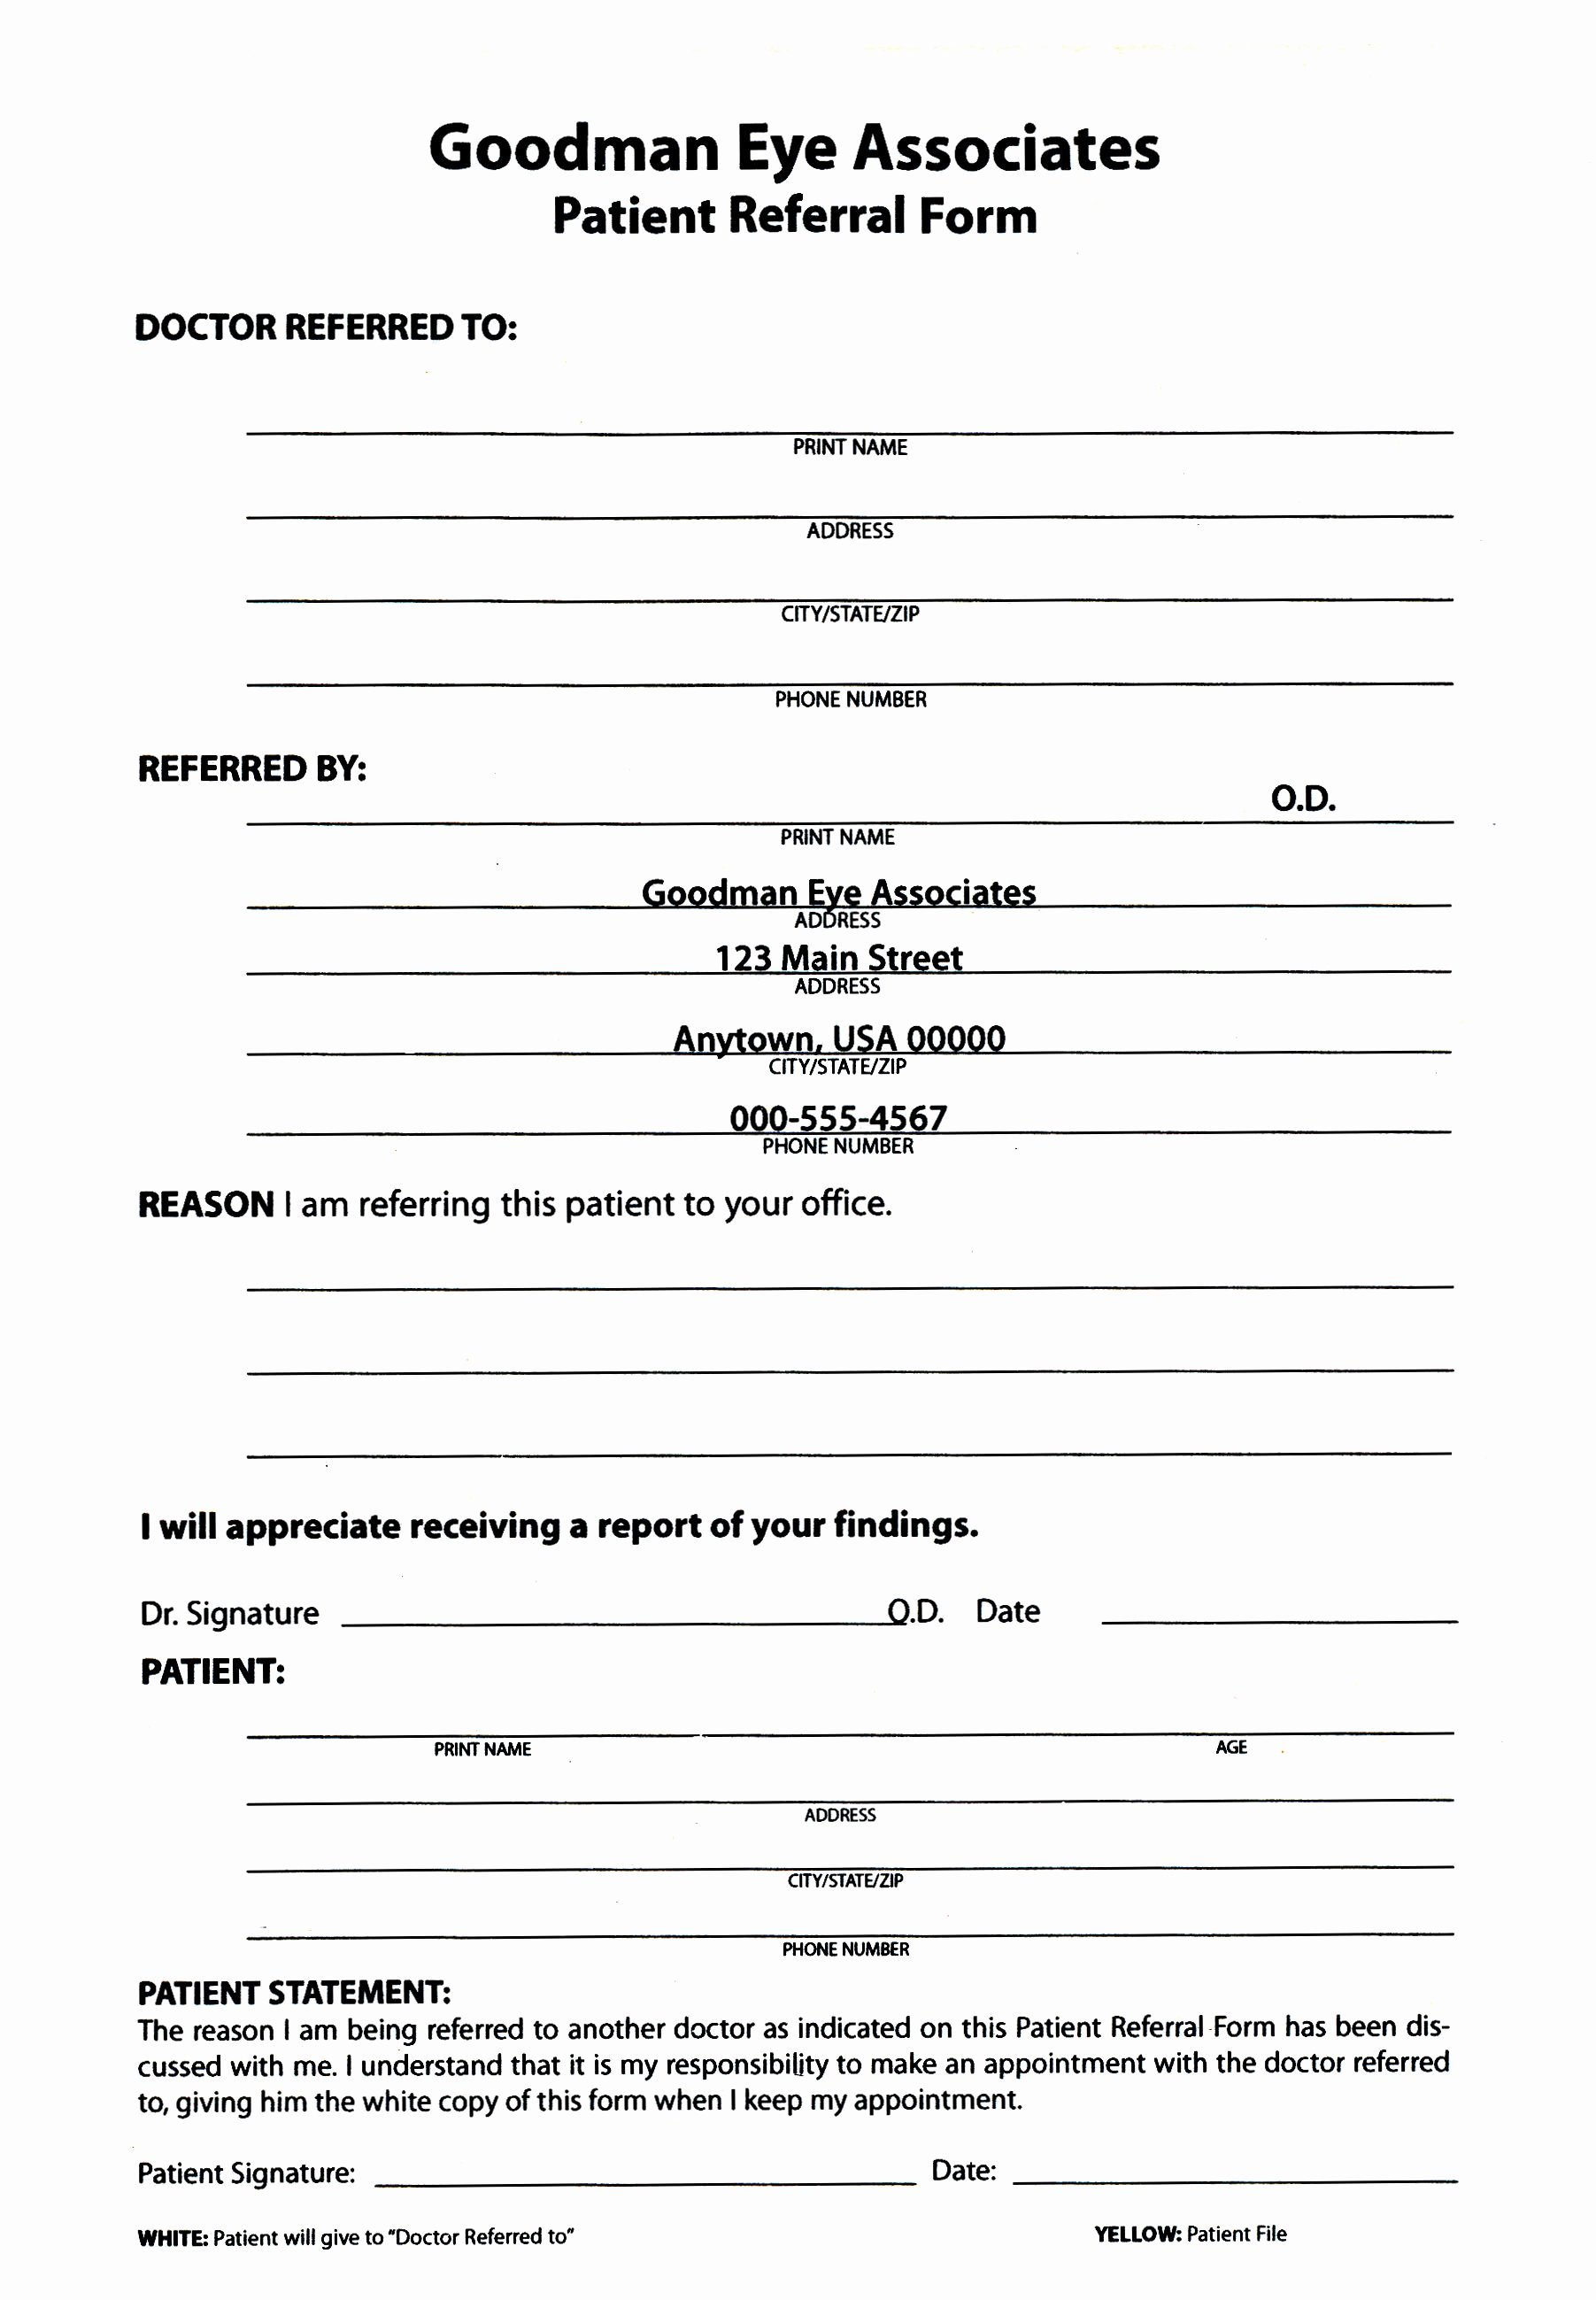 Medical Referral form Template New Medical Referral form – Templates Free Printable